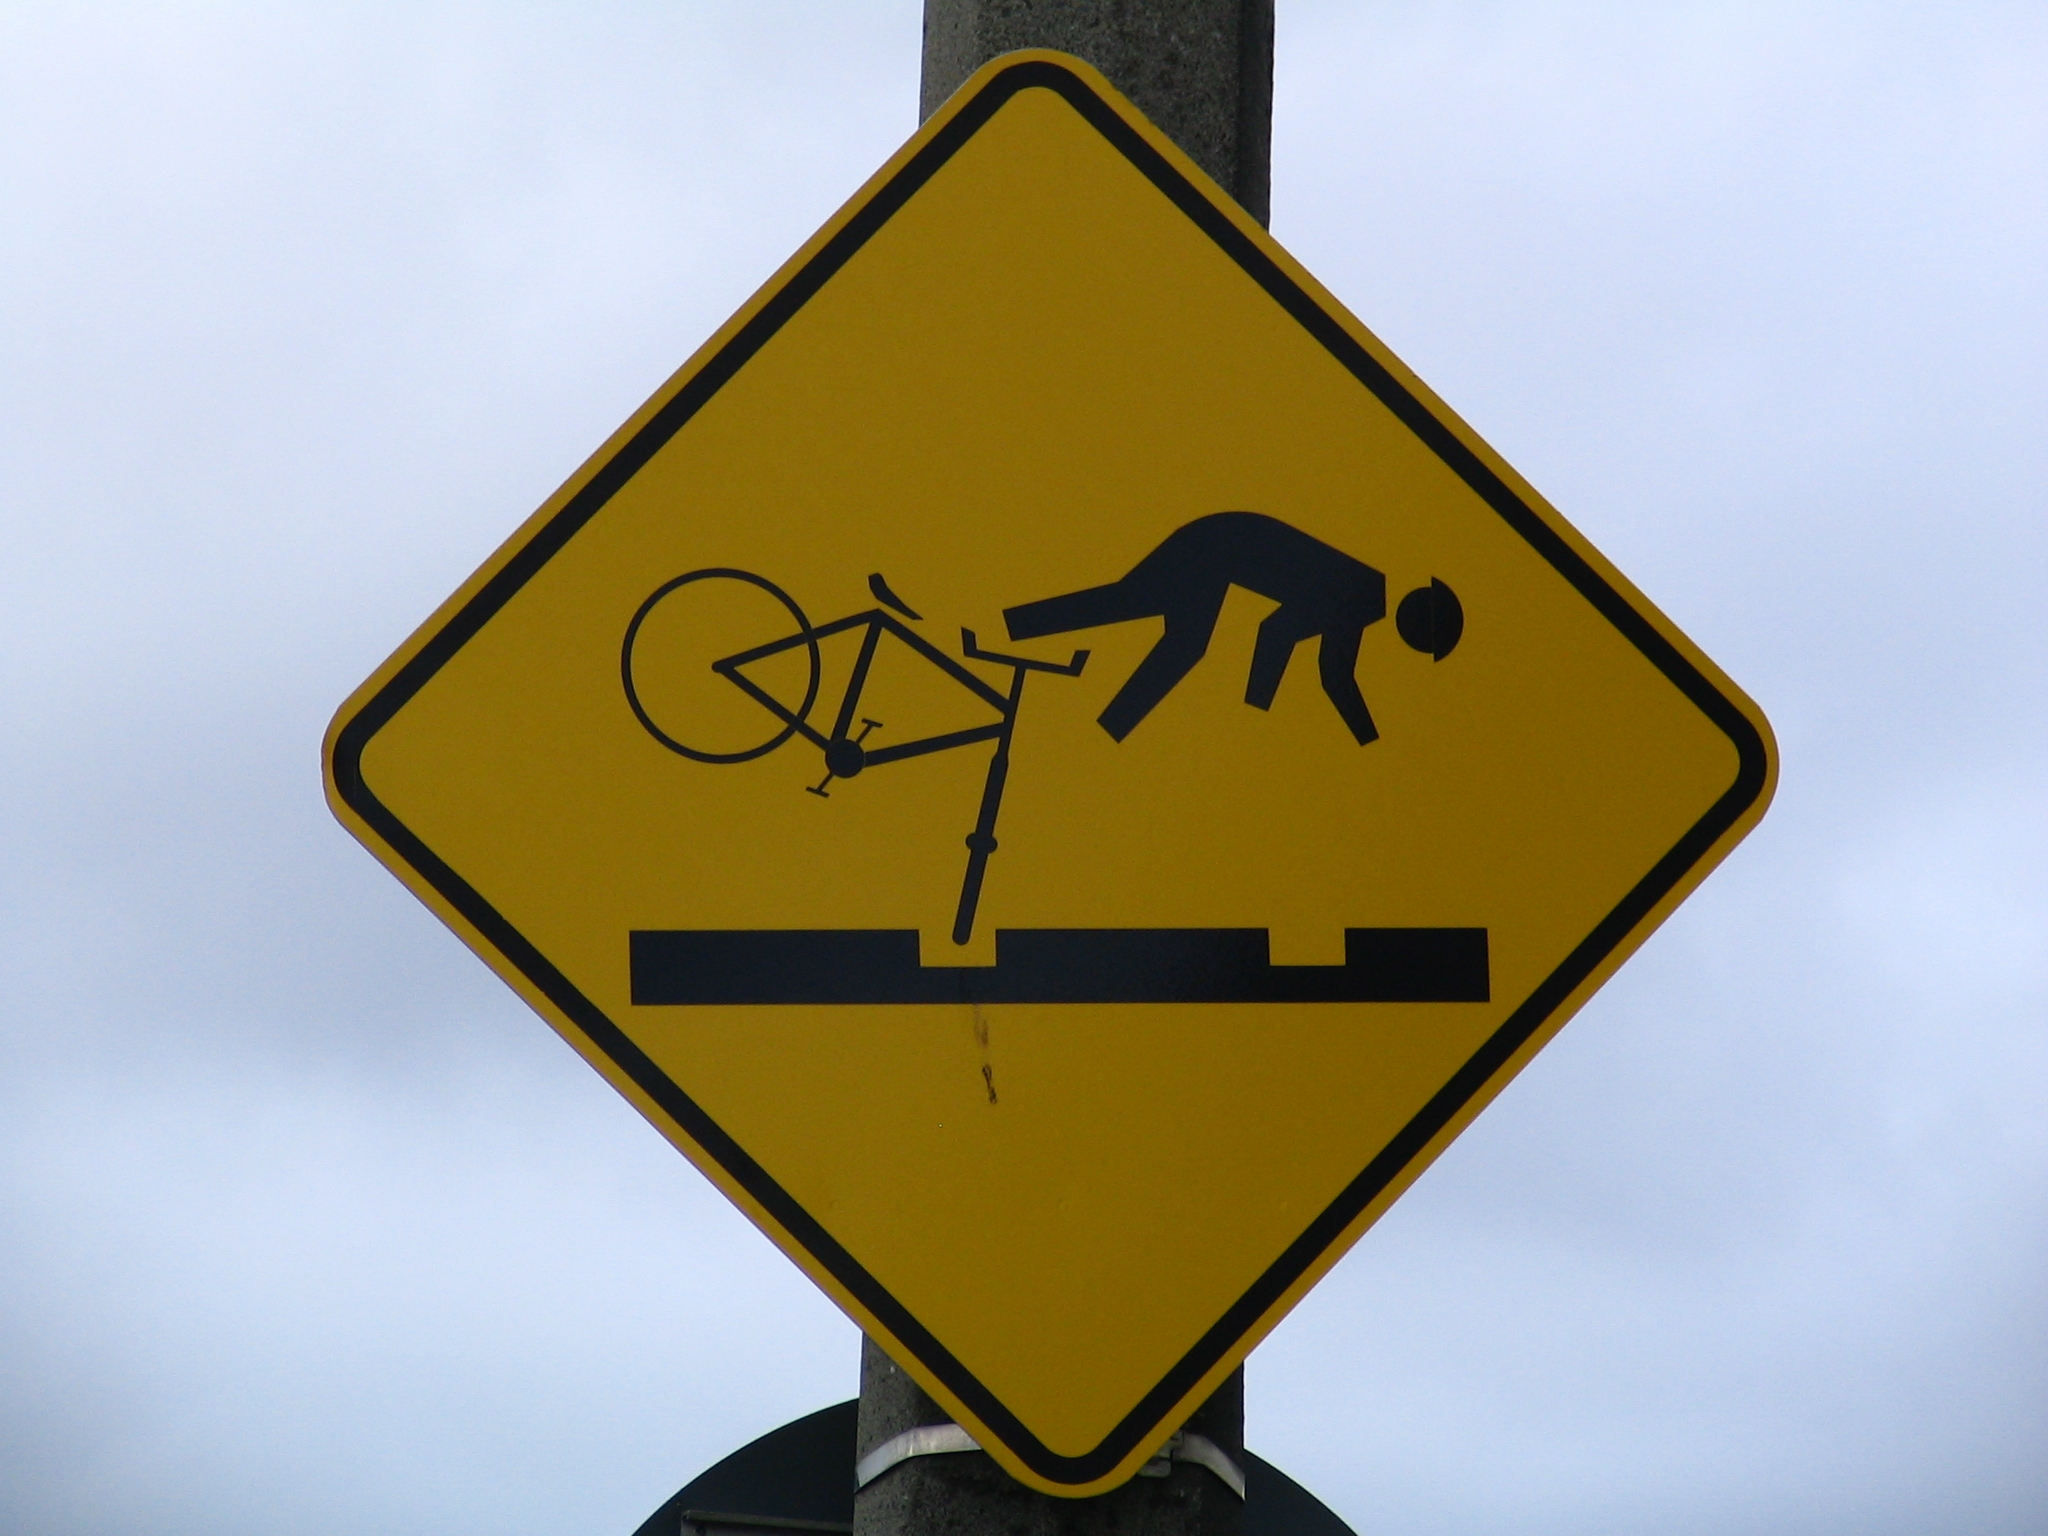 File:Cyclists beware s...